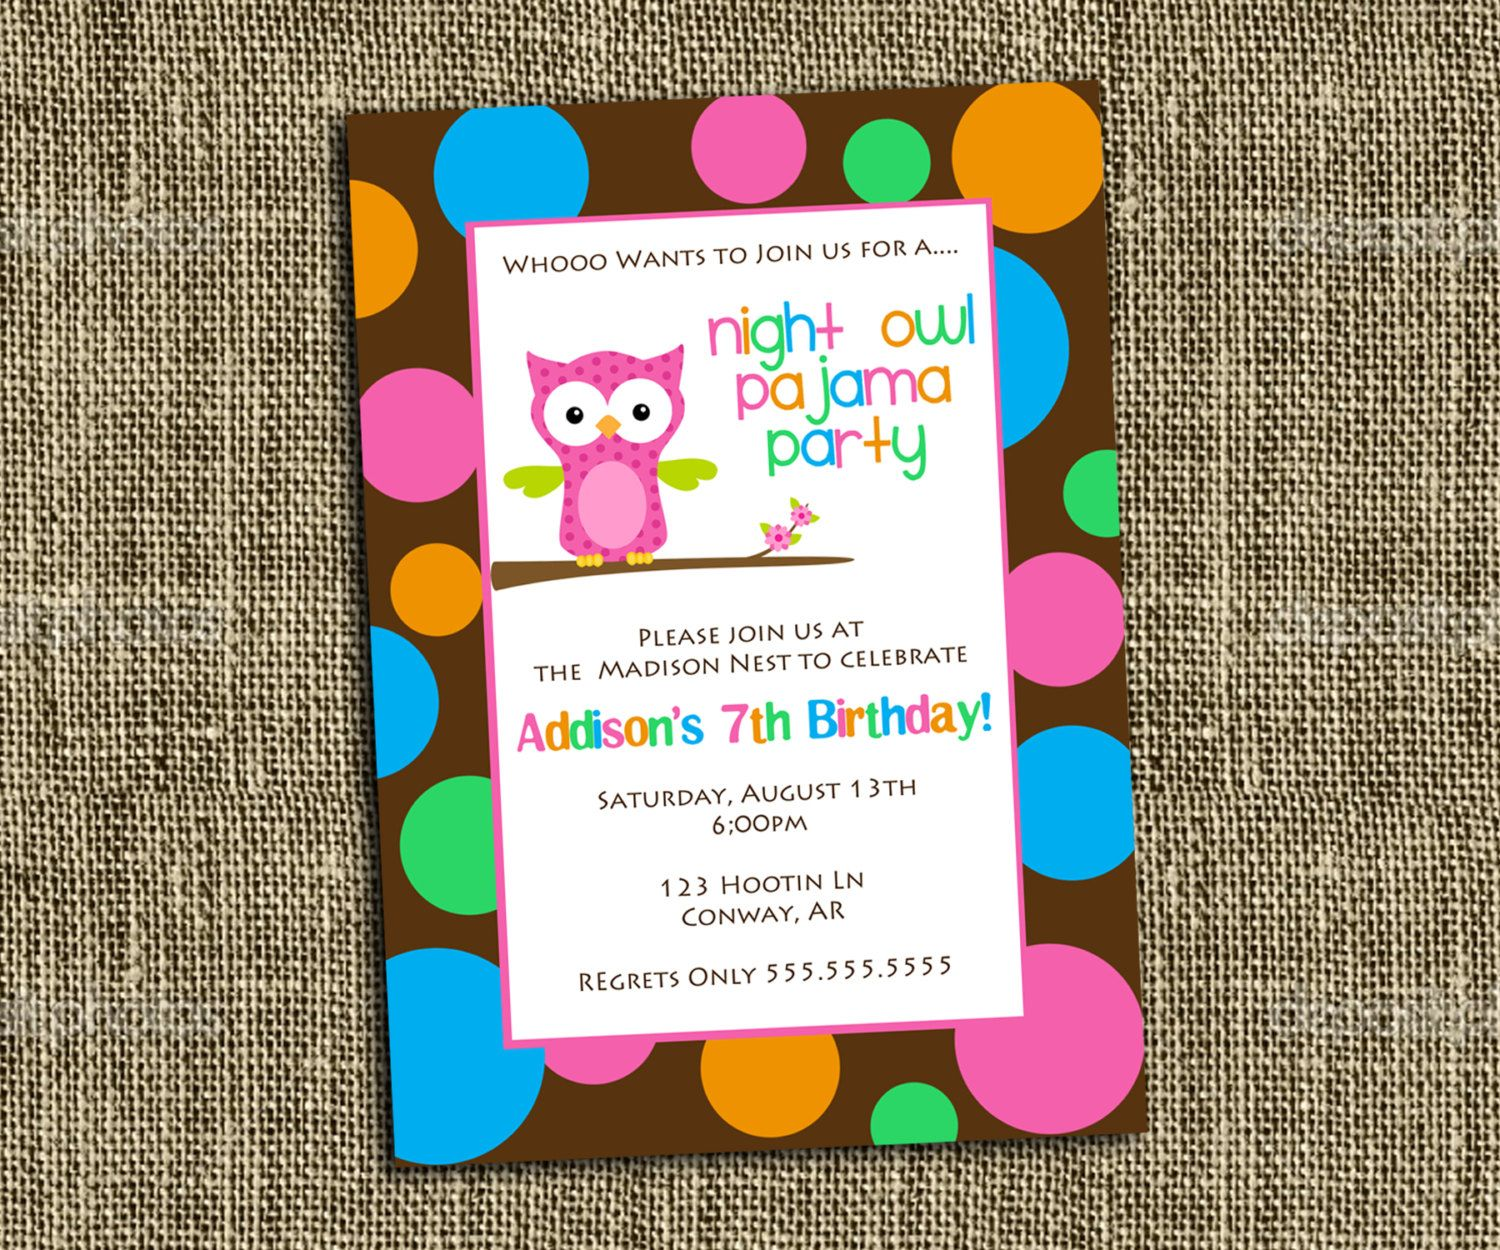 17 Best images about Birthday party ideas – Owl Party Invitations